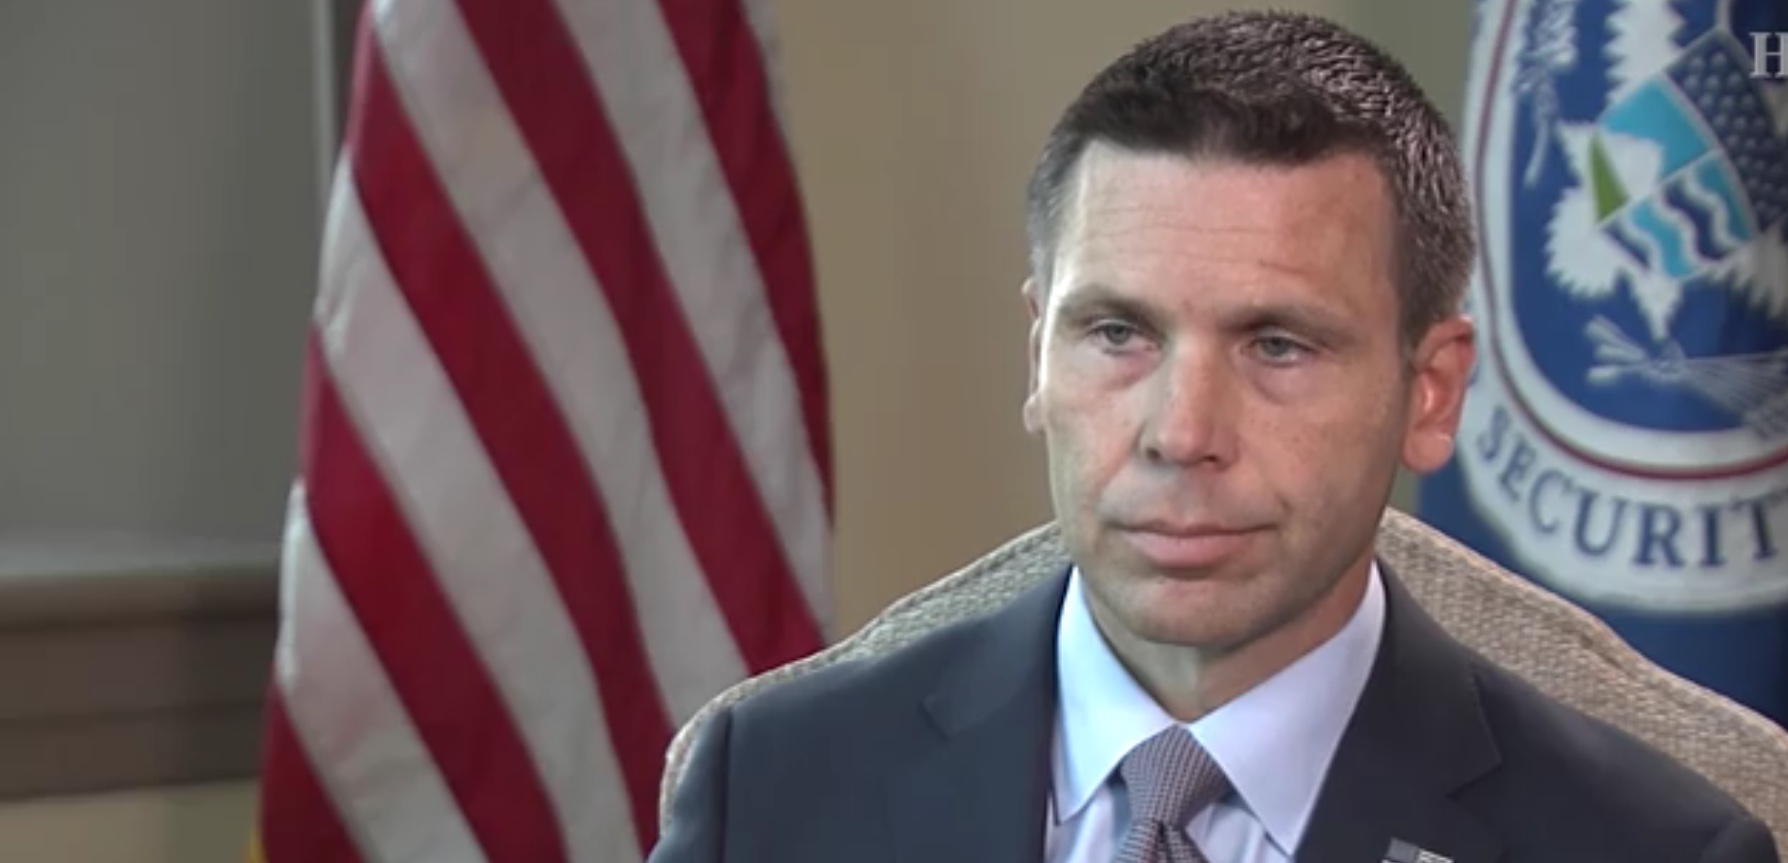 Acting DHS Secretary Kevin McAleenan discusses the border crisis with HillTV, June 4, 2019. HillTV screenshot.